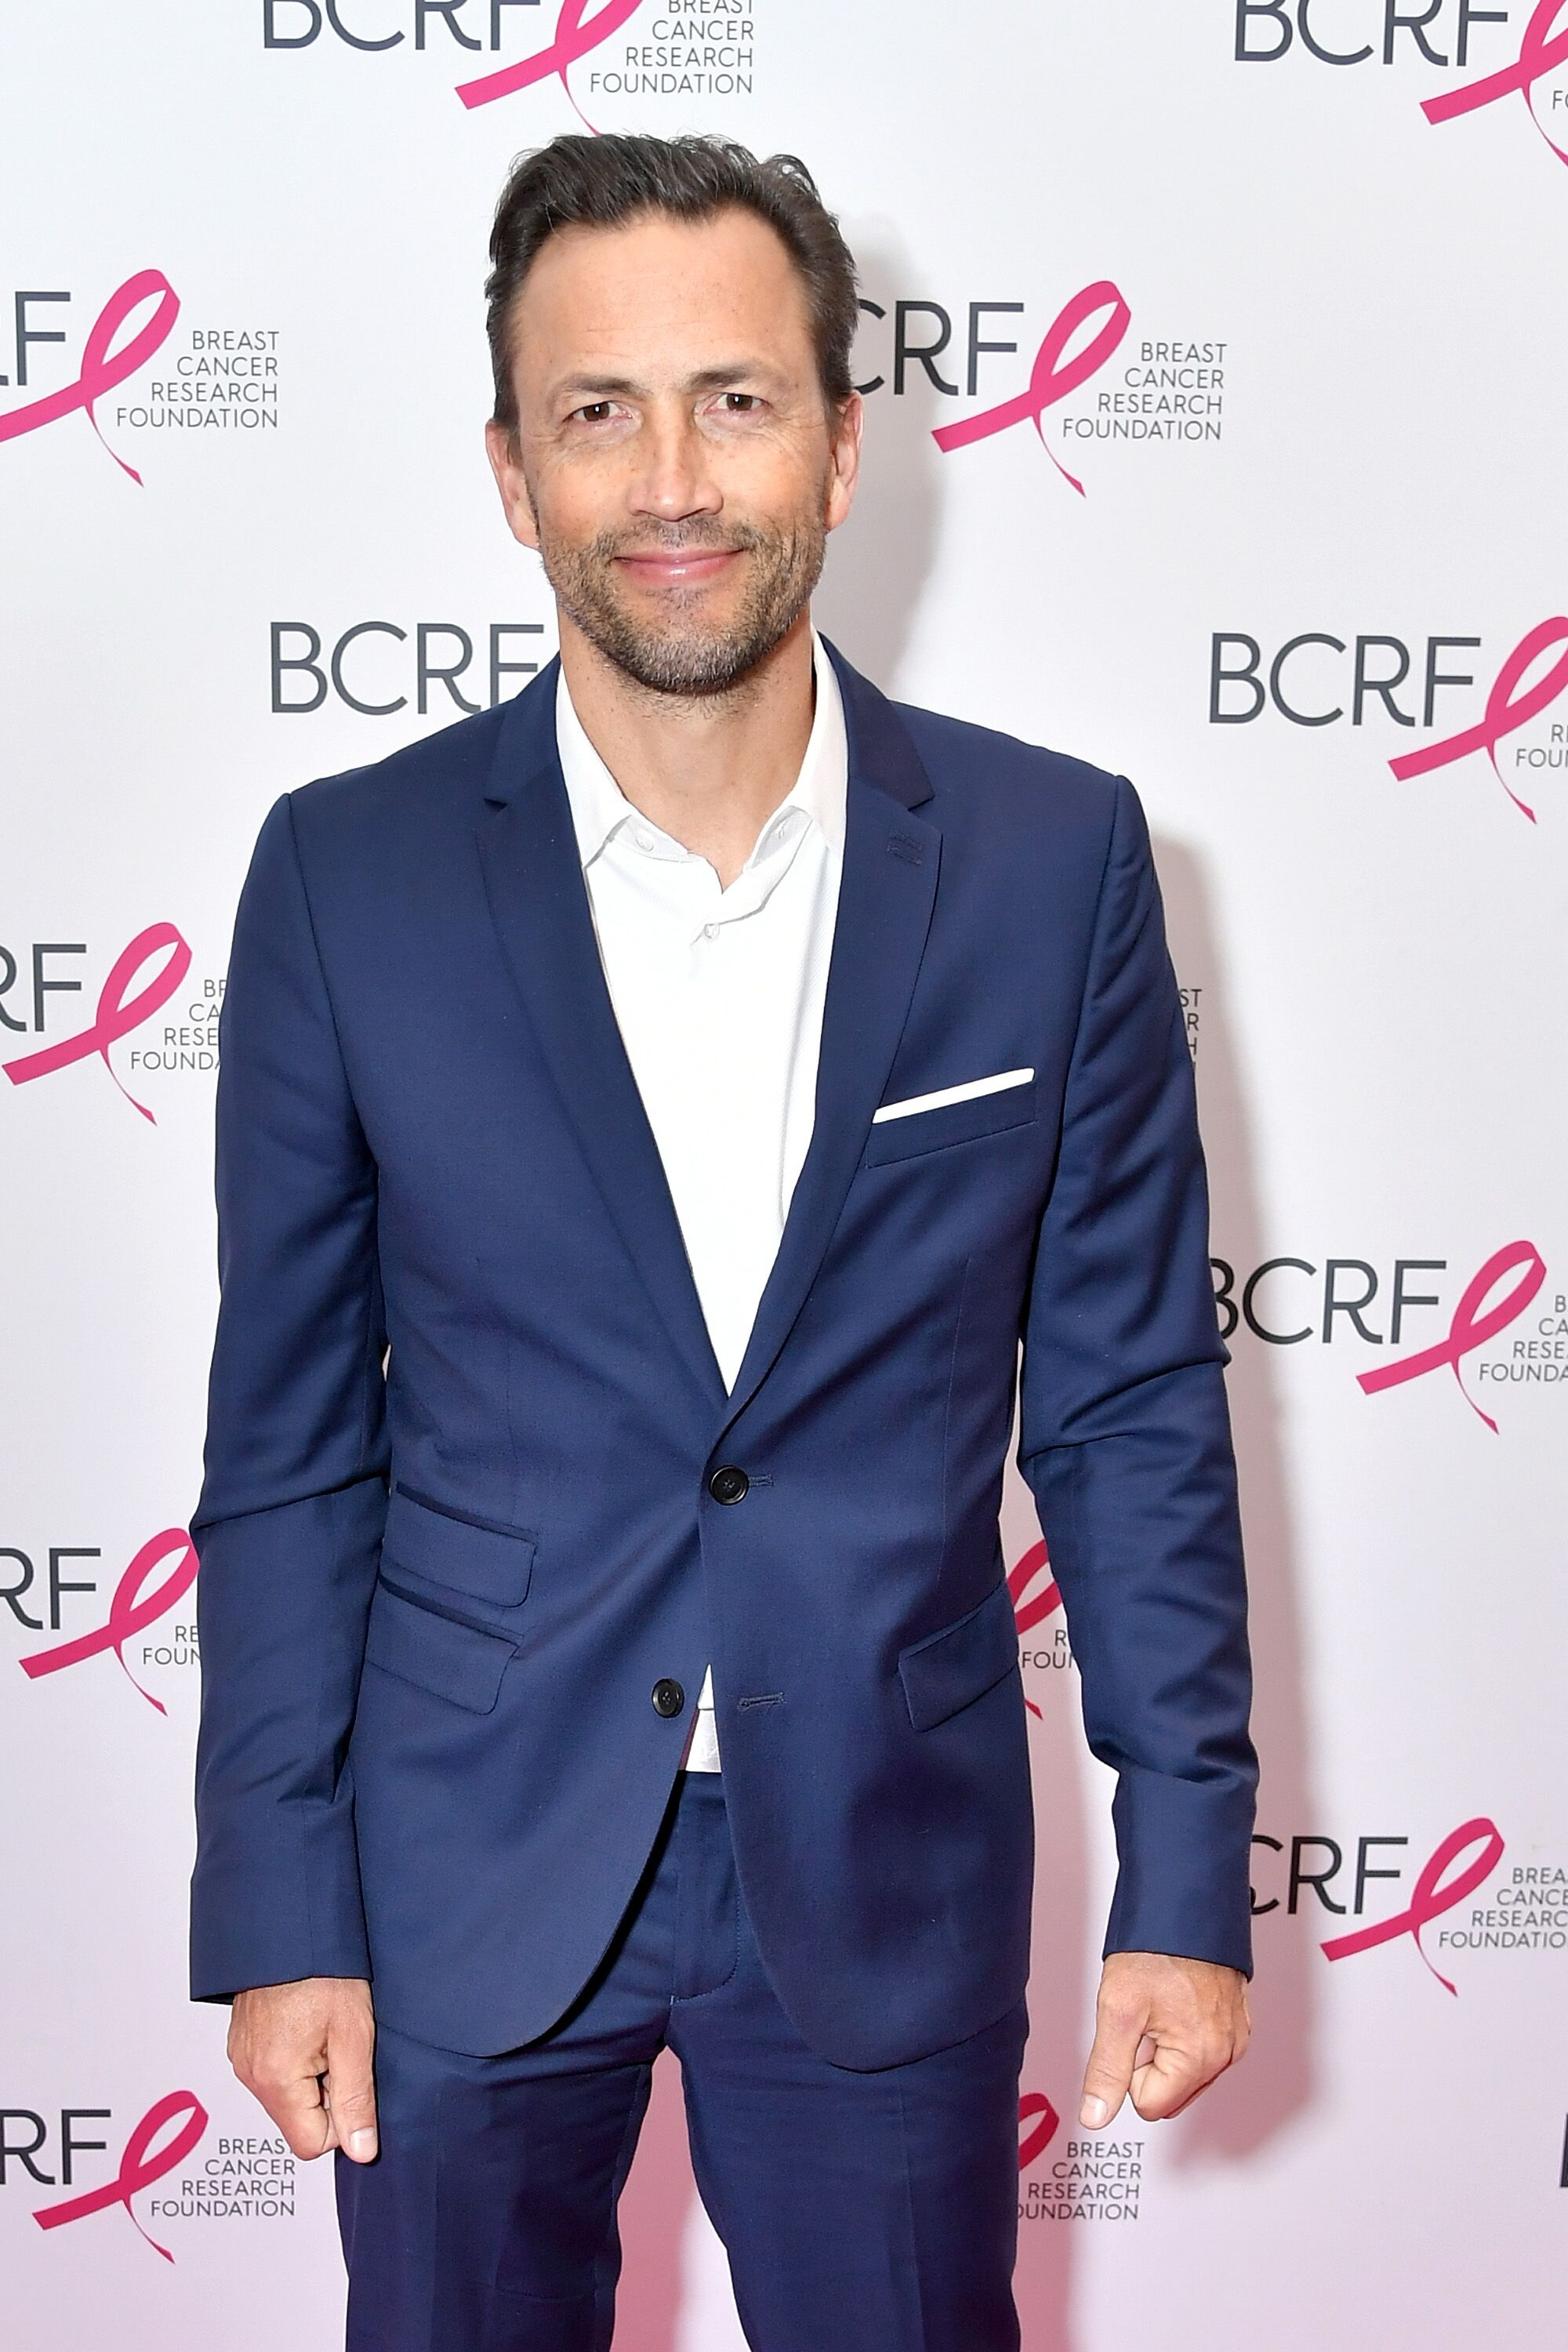 Andrew Shue at the Breast Cancer Research Foundation New York Symposium & Awards in 2018 | Source: Getty Images